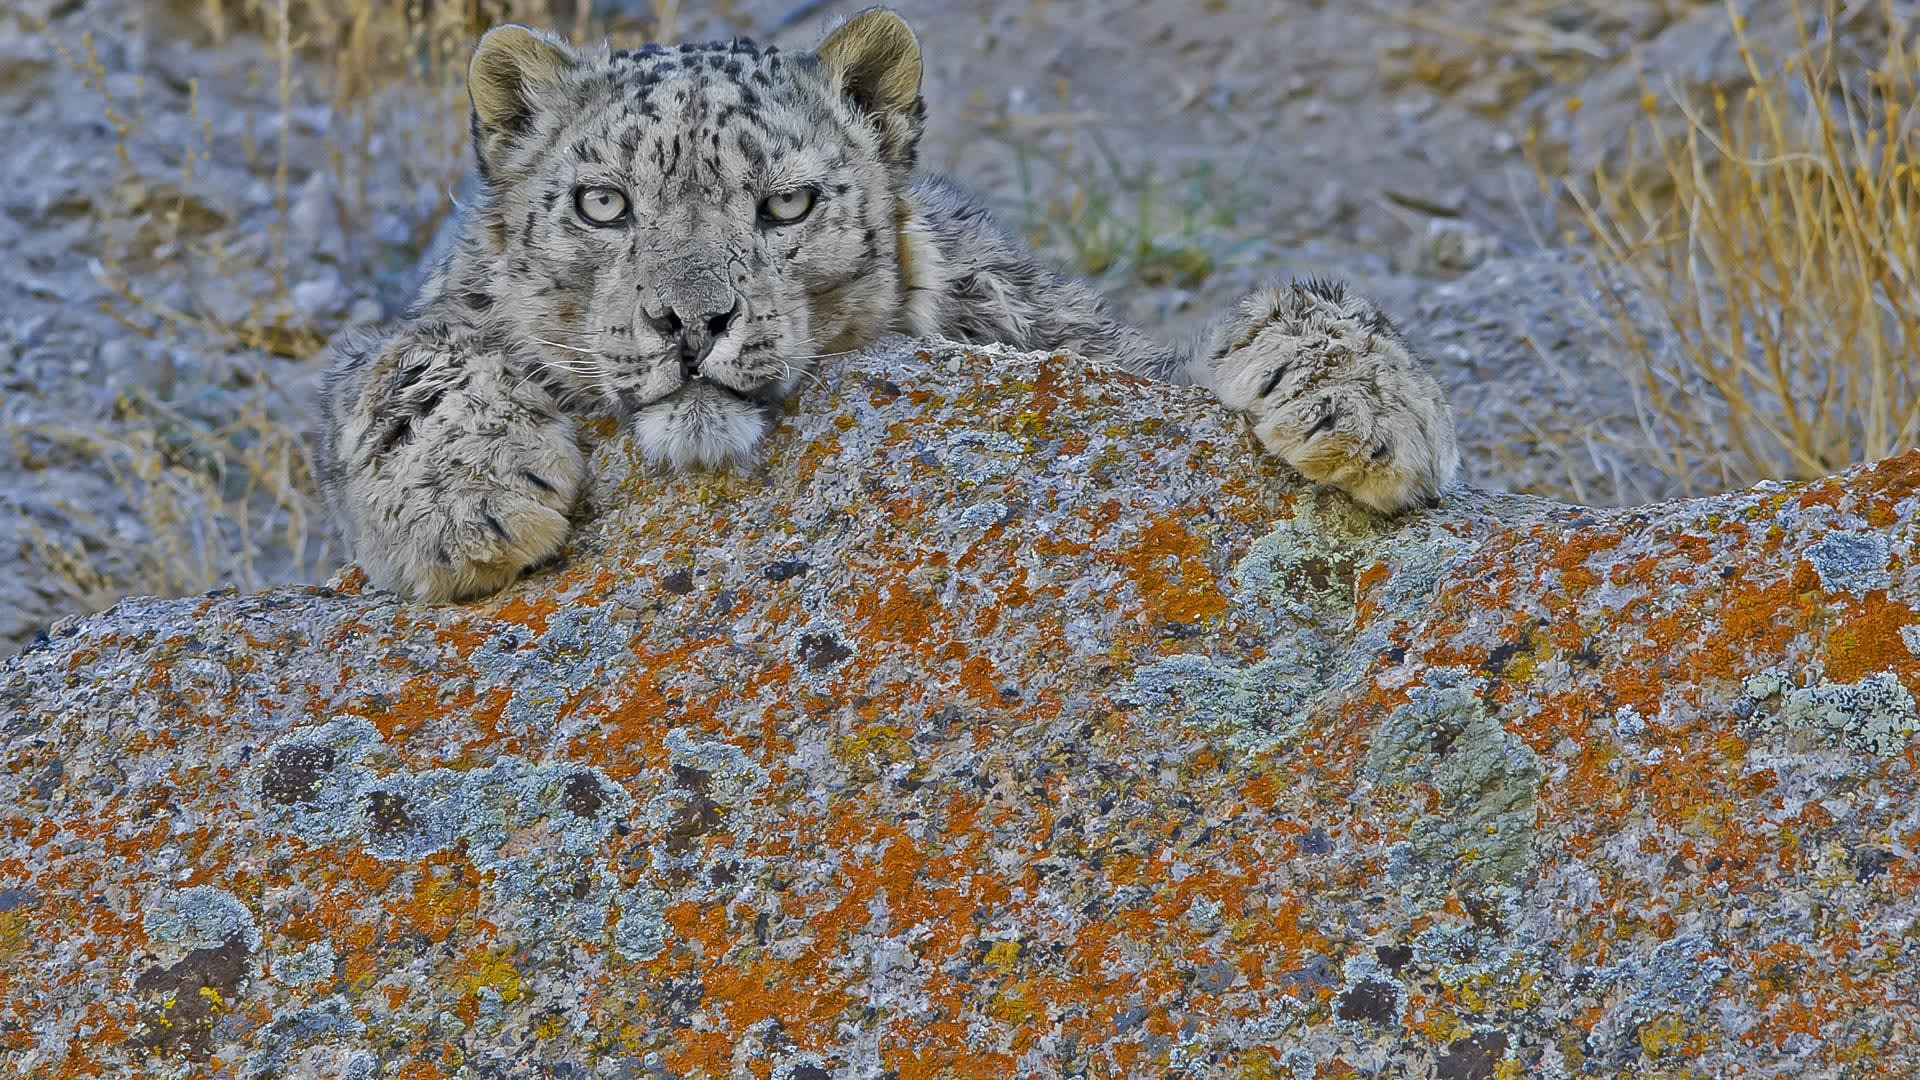 The Shan of Sham: How Local Communities Help Conserve the Snow Leopard